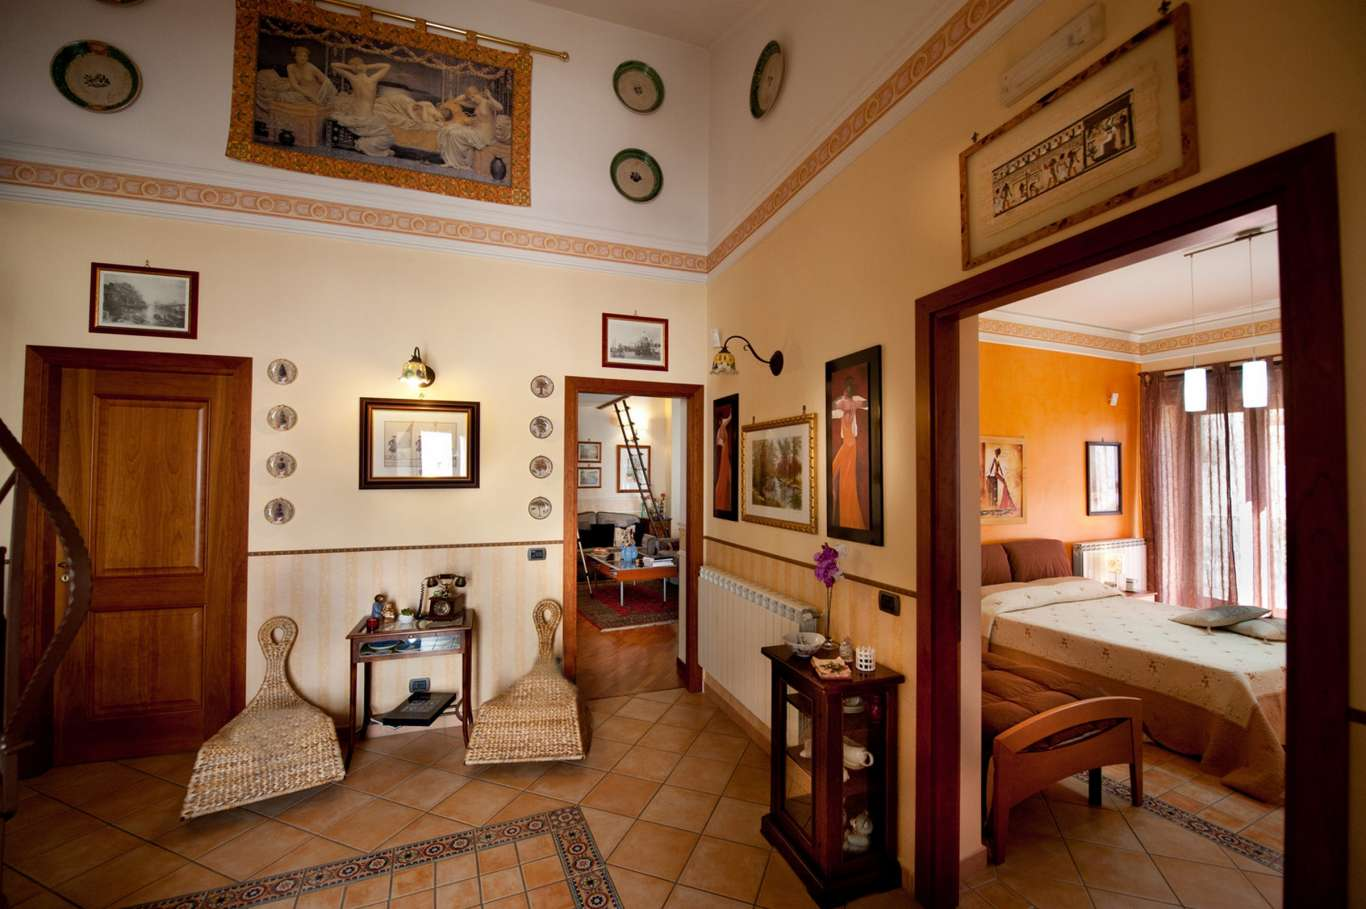 Bed and Breakfast la Pilozza Infiorata